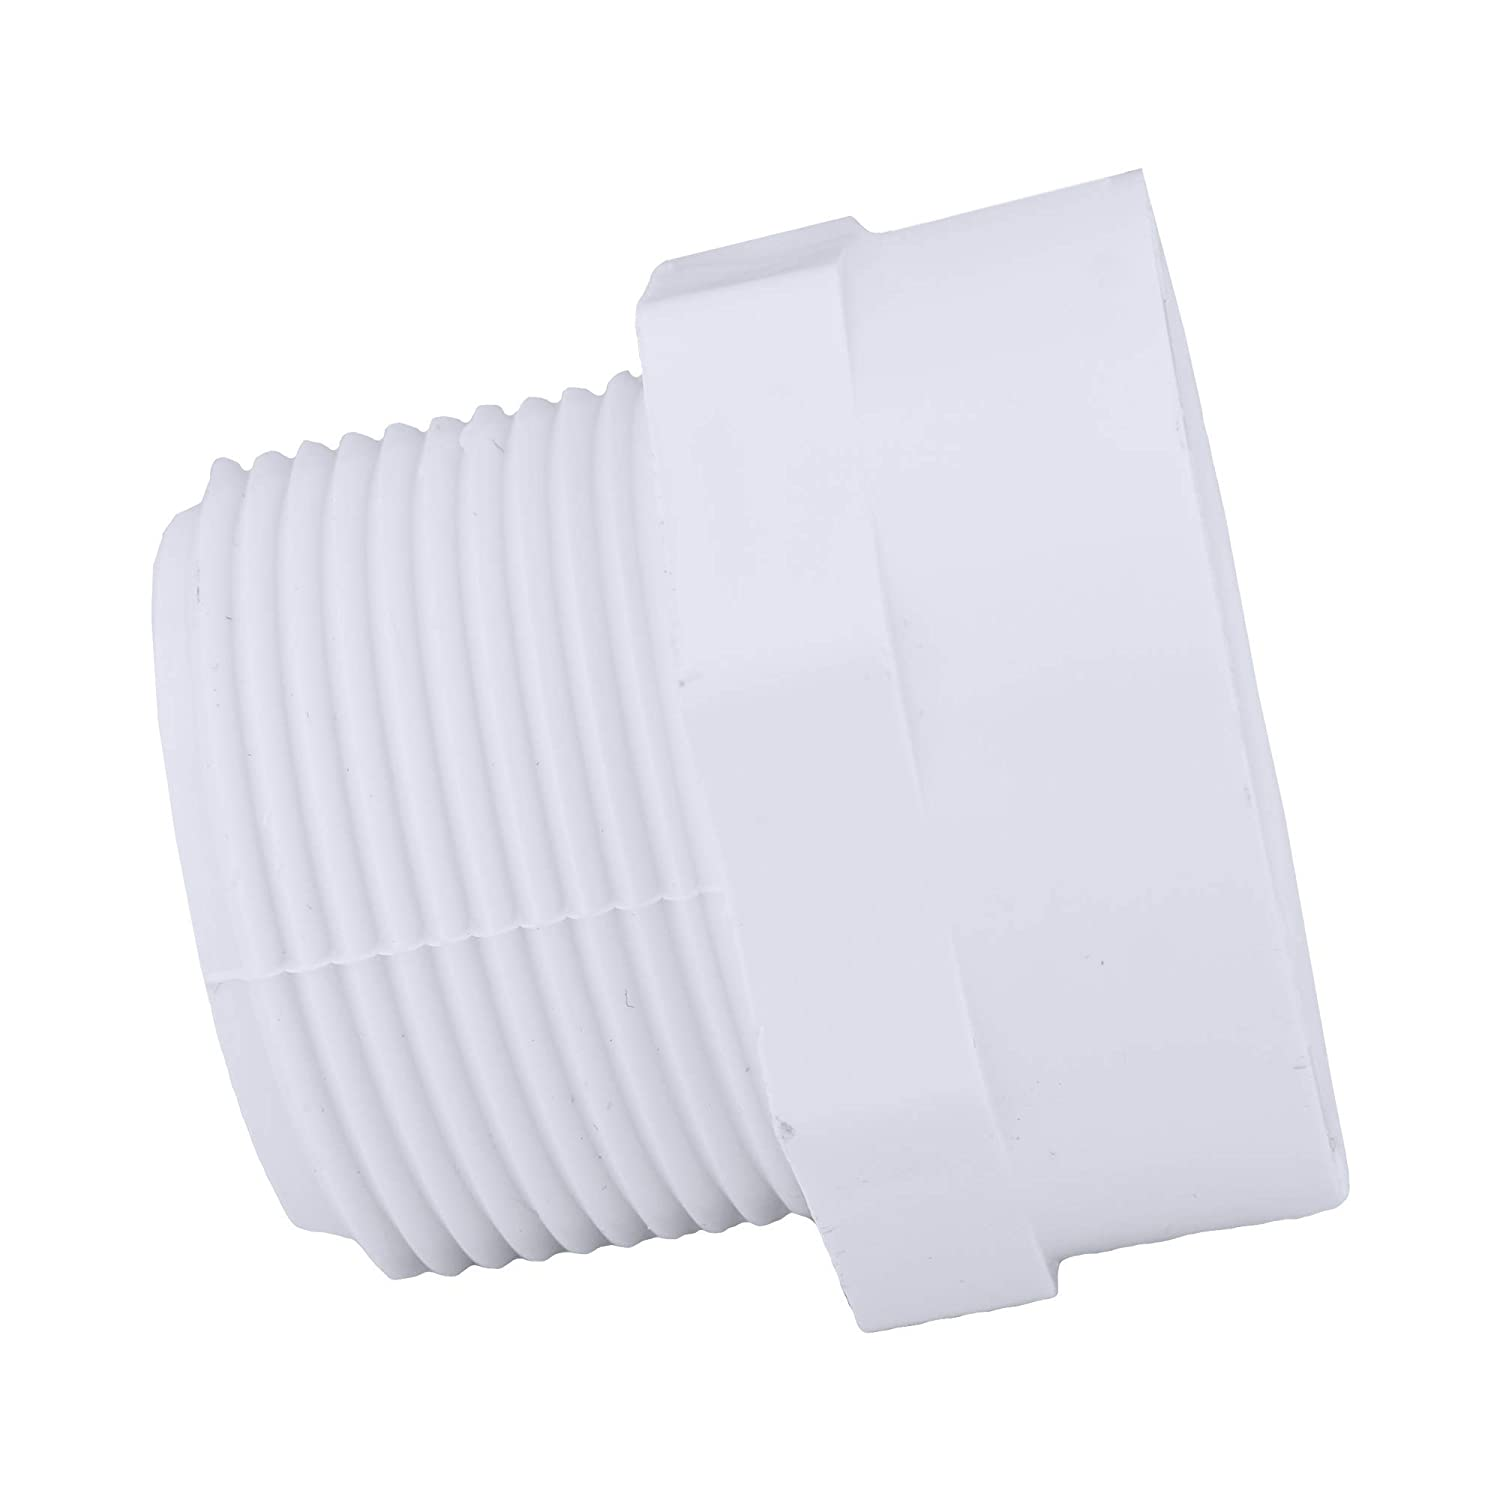 Schedule 40 PVC DWV Durable Drain, Waste and Vent 4000 Unit Pallet High Tensile and Sound Deadening for Home or Industrial Use Easy to Install Charlotte Pipe 1-1//2 Male Adapter Pipe Fitting